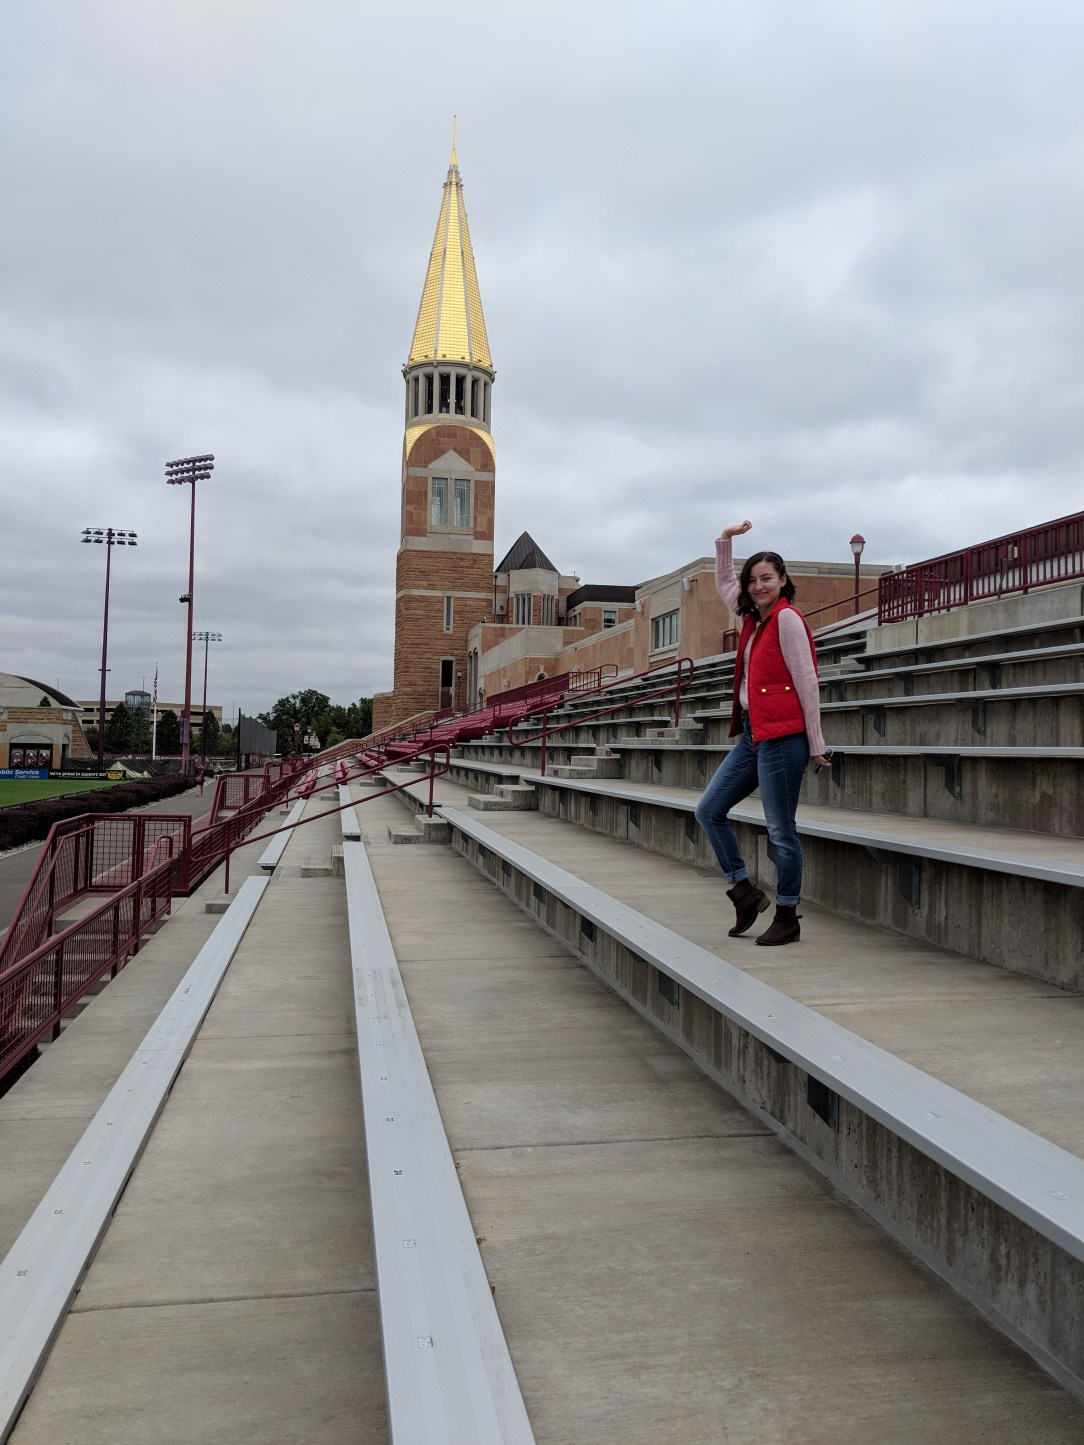 University of Denver, Ritchie Center